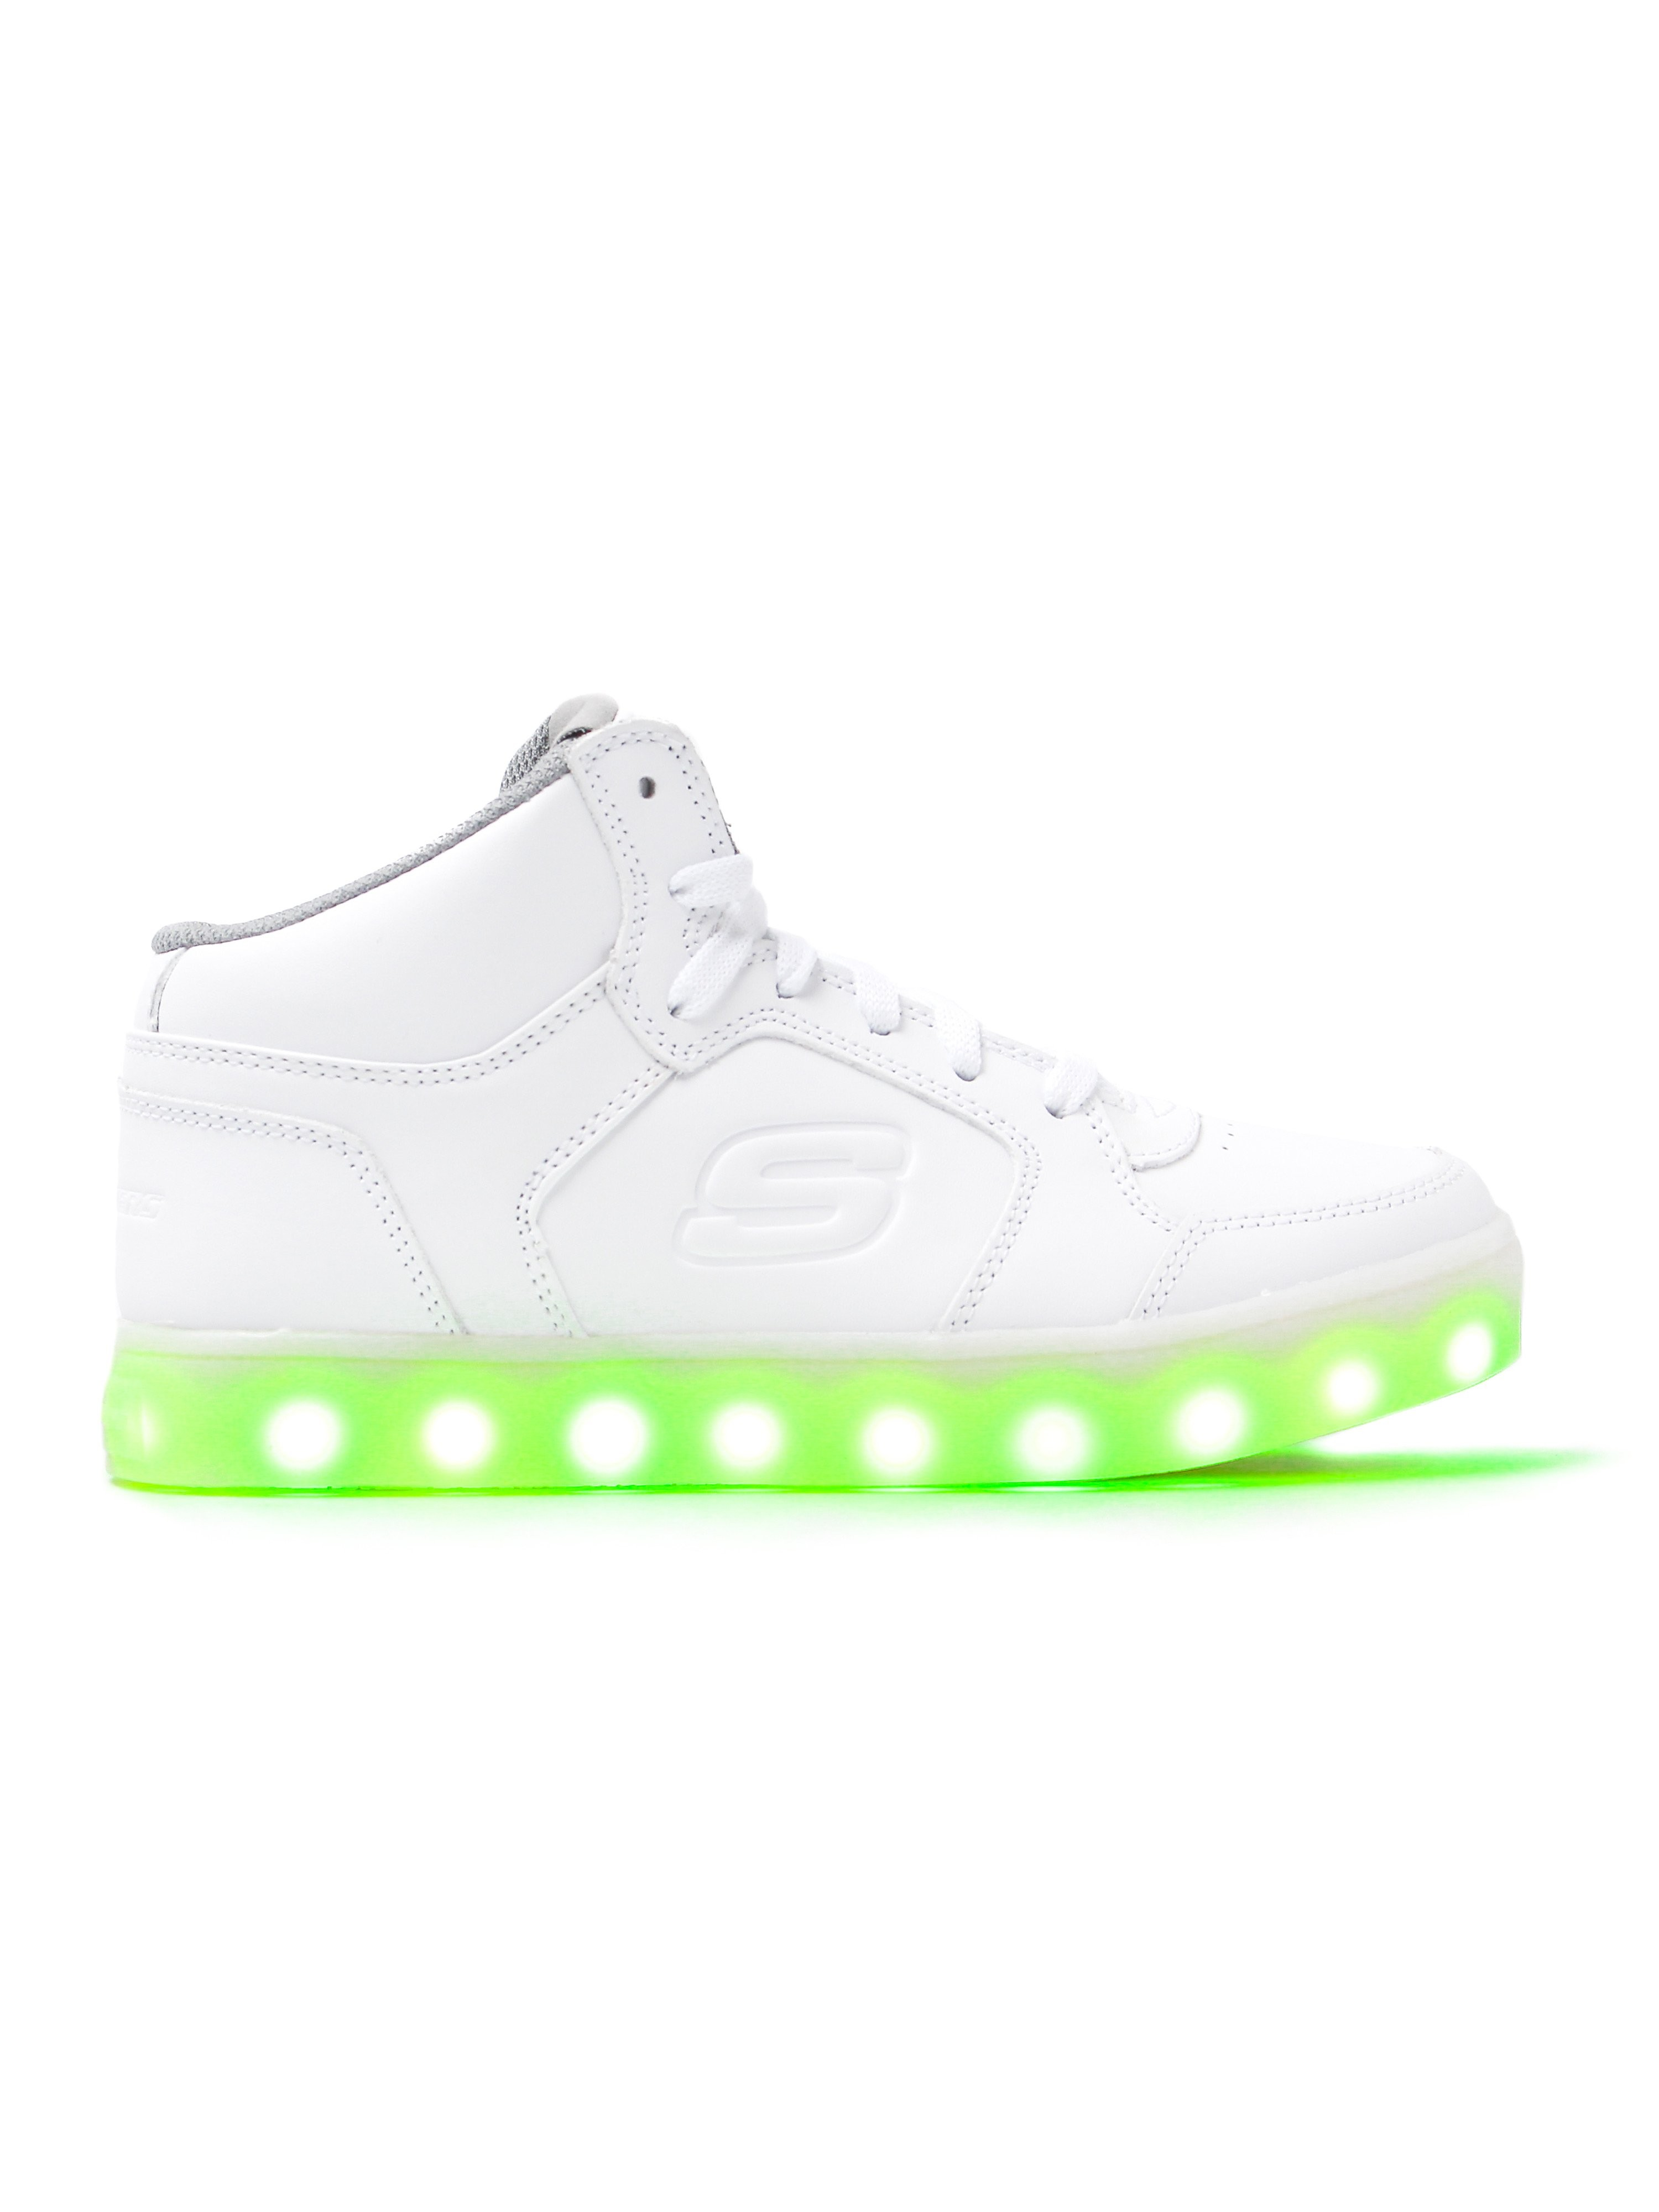 Skechers Kids Energy Lights Trainers - White Leather